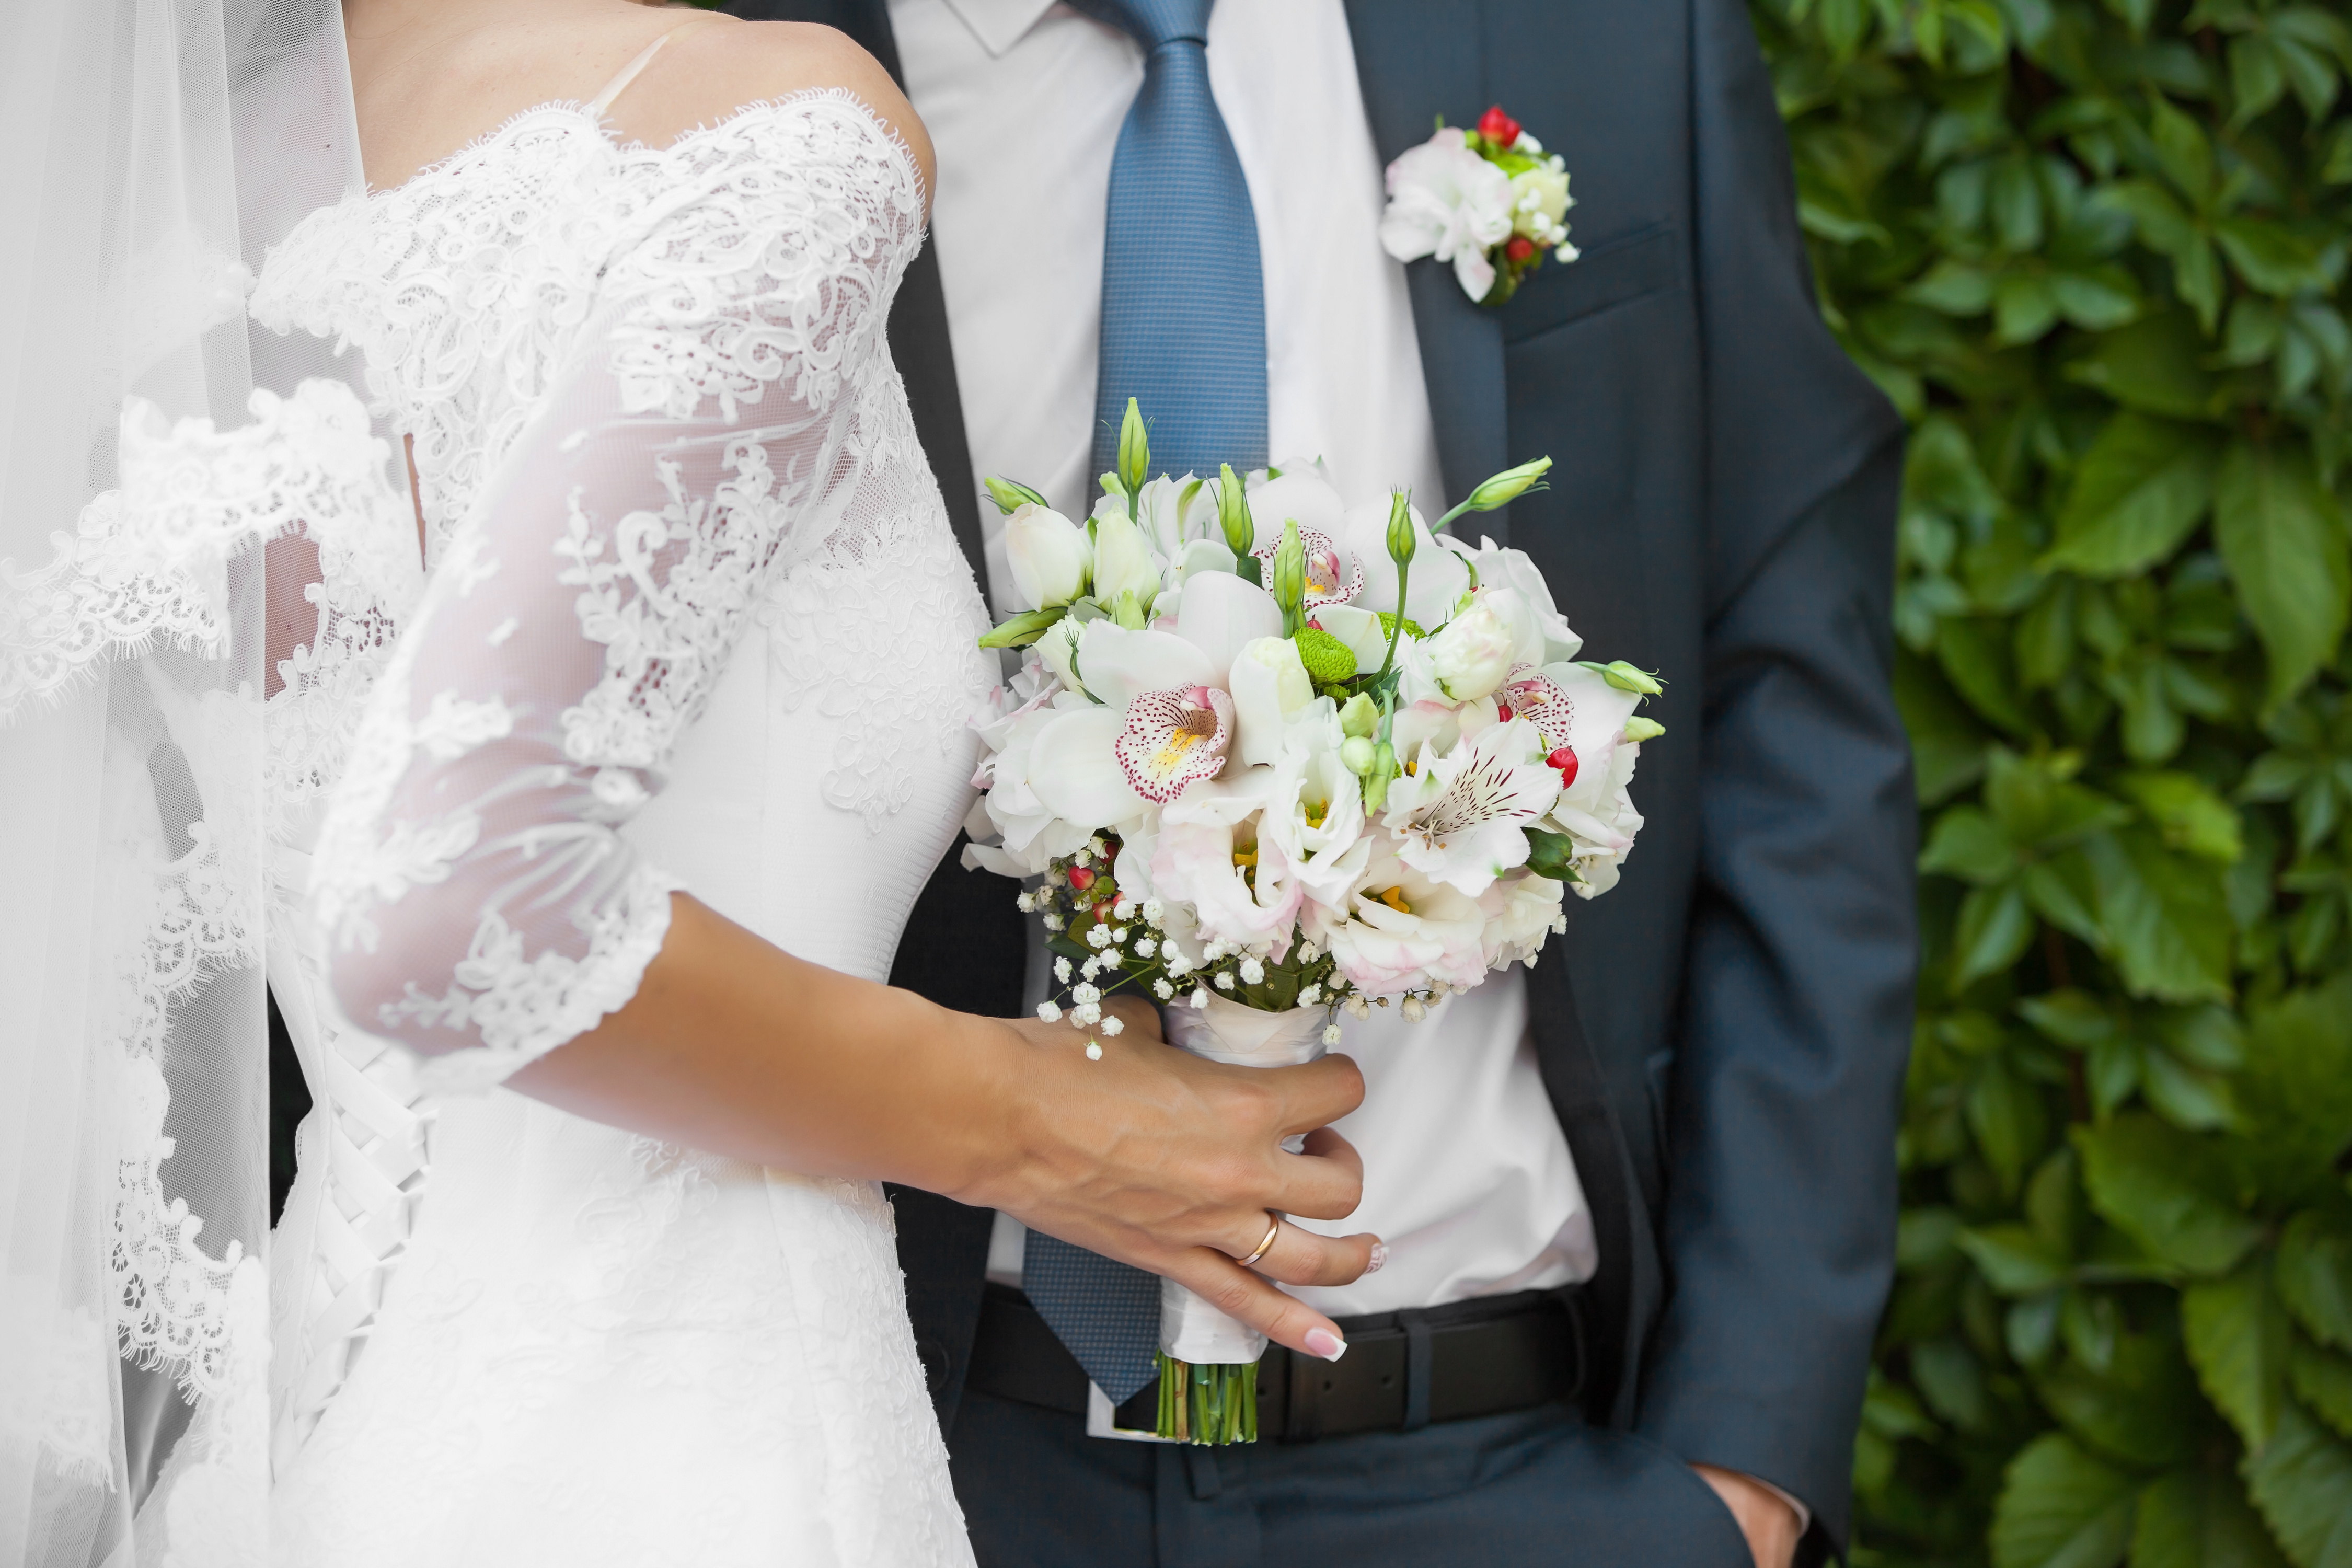 Wedding Gift Etiquette Cost : This entry is from our Expert Guest series where wedding and honeymoon ...